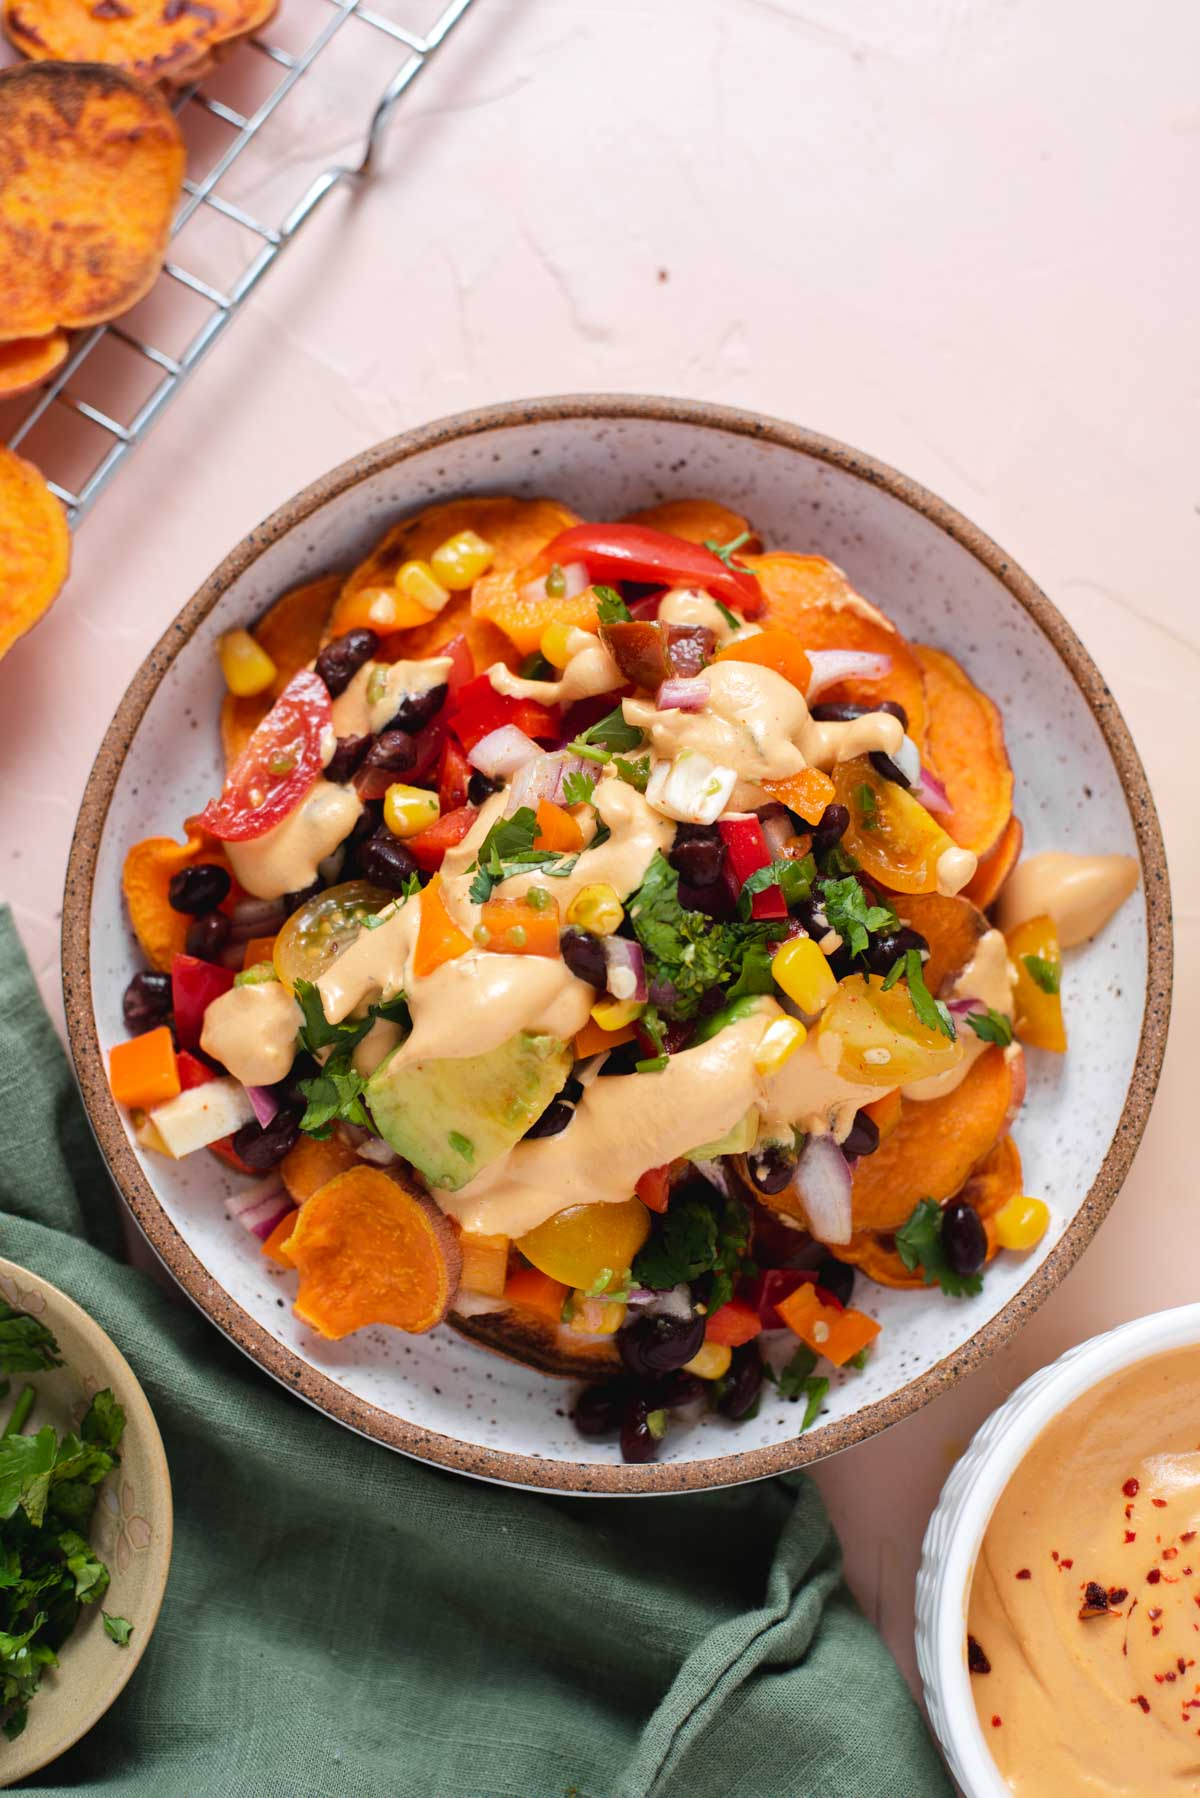 Overhead view of bowl of sweet potato nachos on a pink background